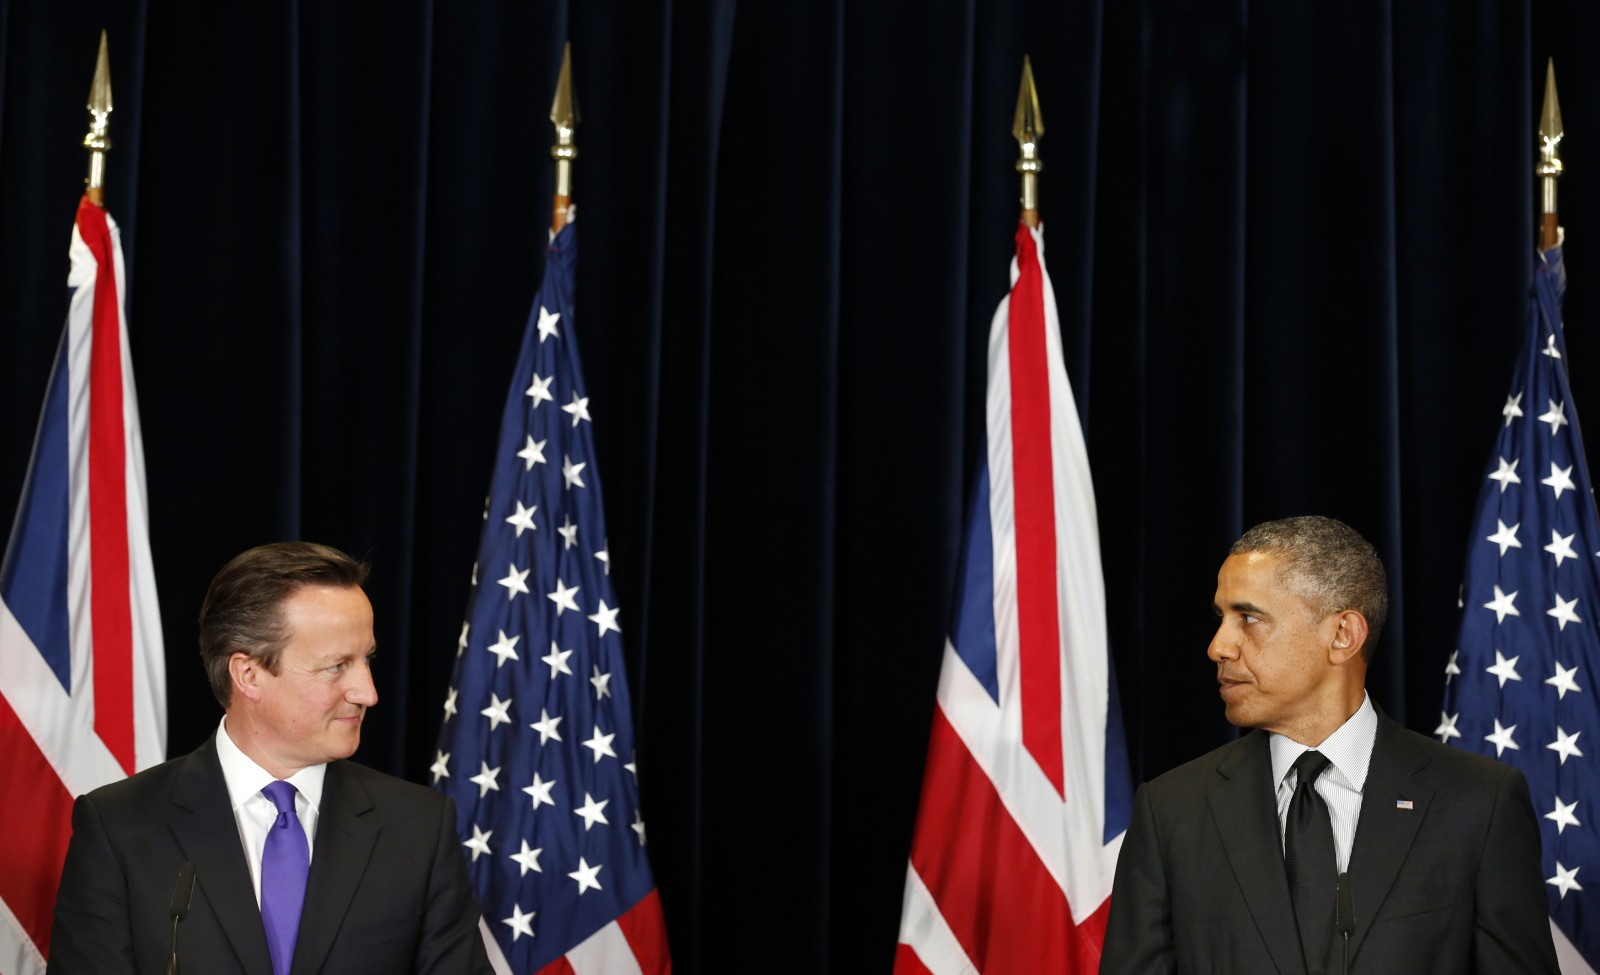 U.S. President Barack Obama (R) and British Prime Minister David Cameron look at each other as they speak at a joint news conference after their meeting at the G7 summit in Brussels June 5, 2014.    REUTERS/Kevin Lamarque  (BELGIUM - Tags: POLITICS TPX IMAGES OF THE DAY) - RTR3SCW3